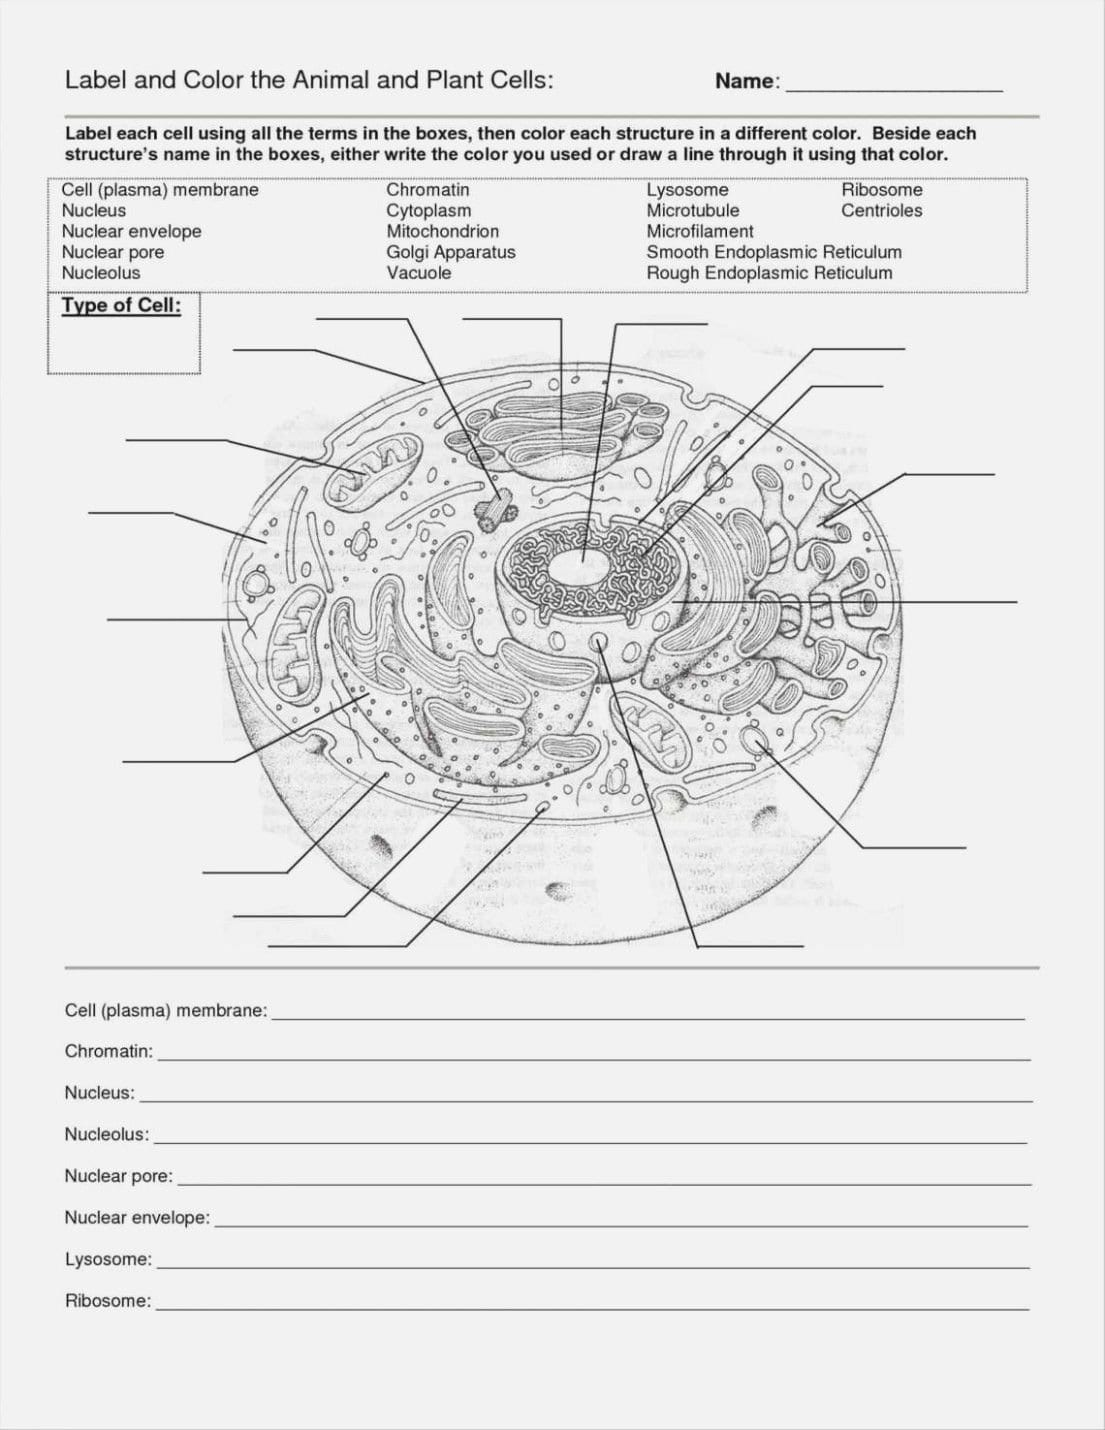 Cells Alive Bacterial Cell Worksheet Answer Key  Briefencounters Inside Cells Alive Bacterial Cell Worksheet Answer Key